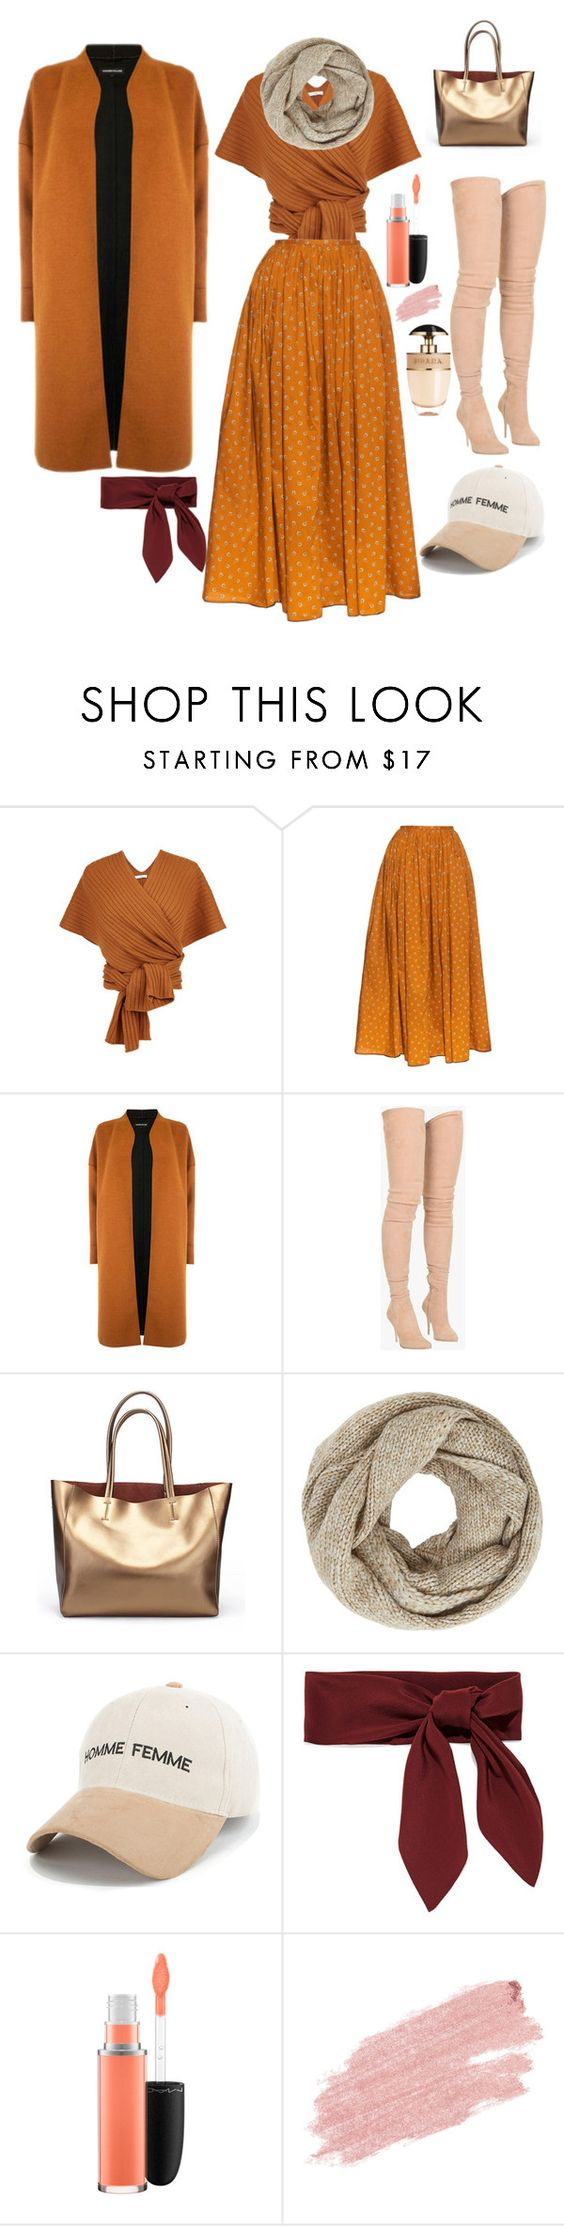 """Fall Coloura"" by krisalynj ❤ liked on Polyvore featuring TIBI, Thierry Colson, Warehouse, Balmain, John Lewis, Chloé, MAC Cosmetics, Jane Iredale and Prada"